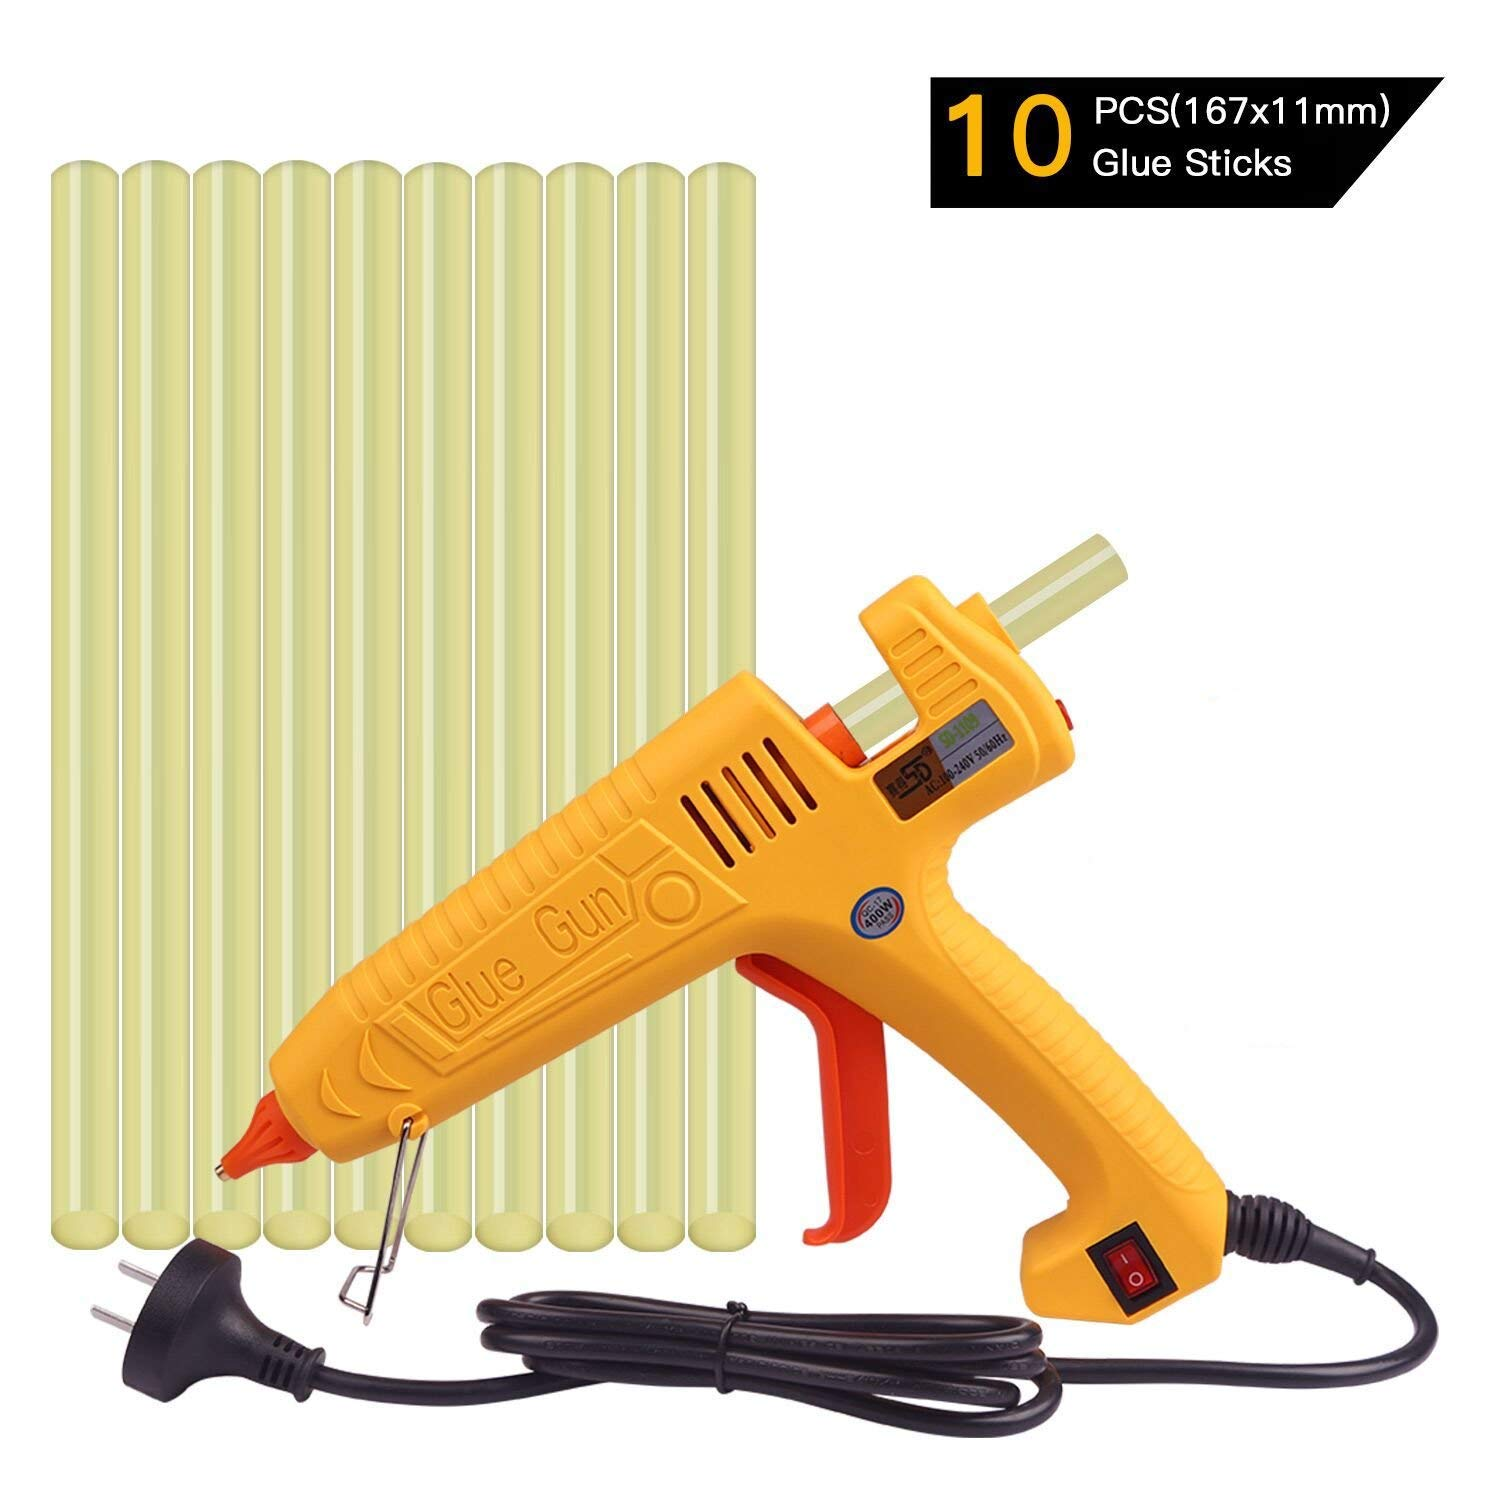 FLY5D 400W Hot Melt PDR Glue Gun with 10pcs Super Sticky Glue Sticks for Auto Metal Dent Puller Repair Home Use DIY for Arts & Crafts & Sealing and Quick Repairs (400W Glue Gun Set)